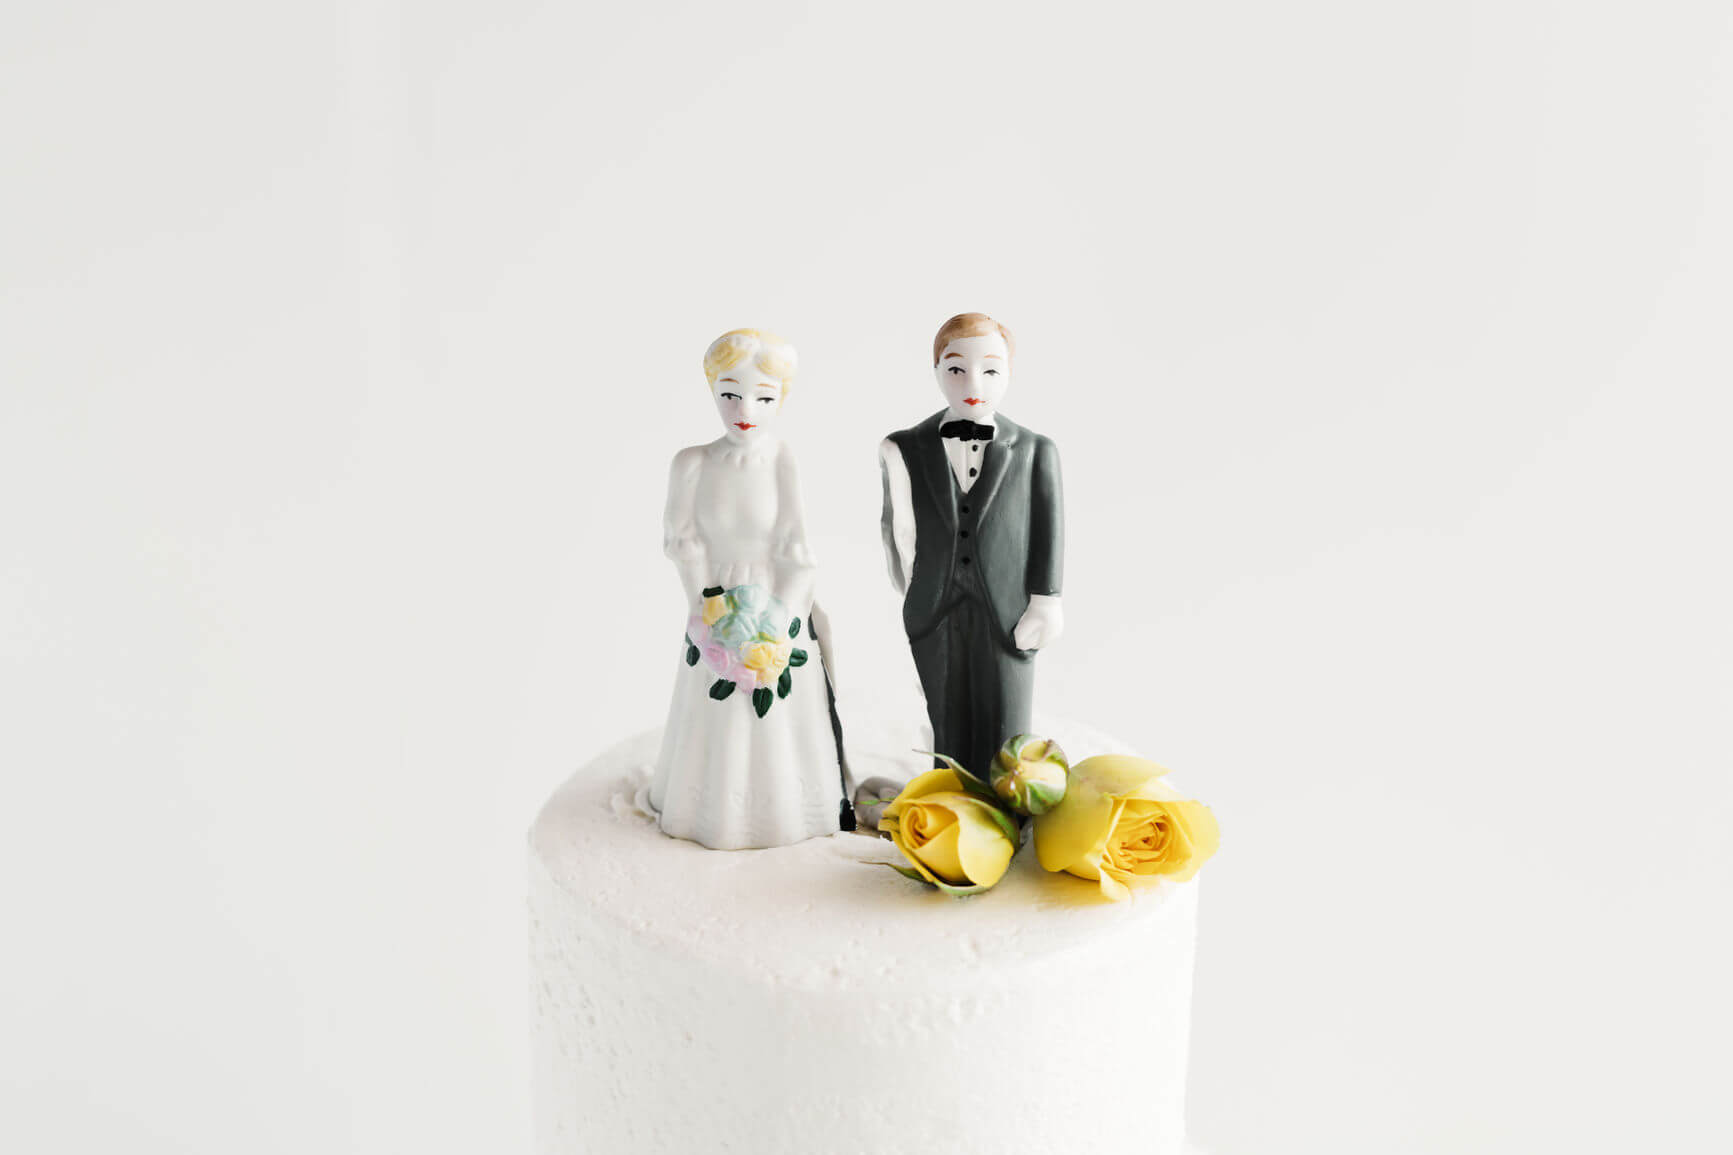 A broken couple standing on their white wedding cake to signify divorce.